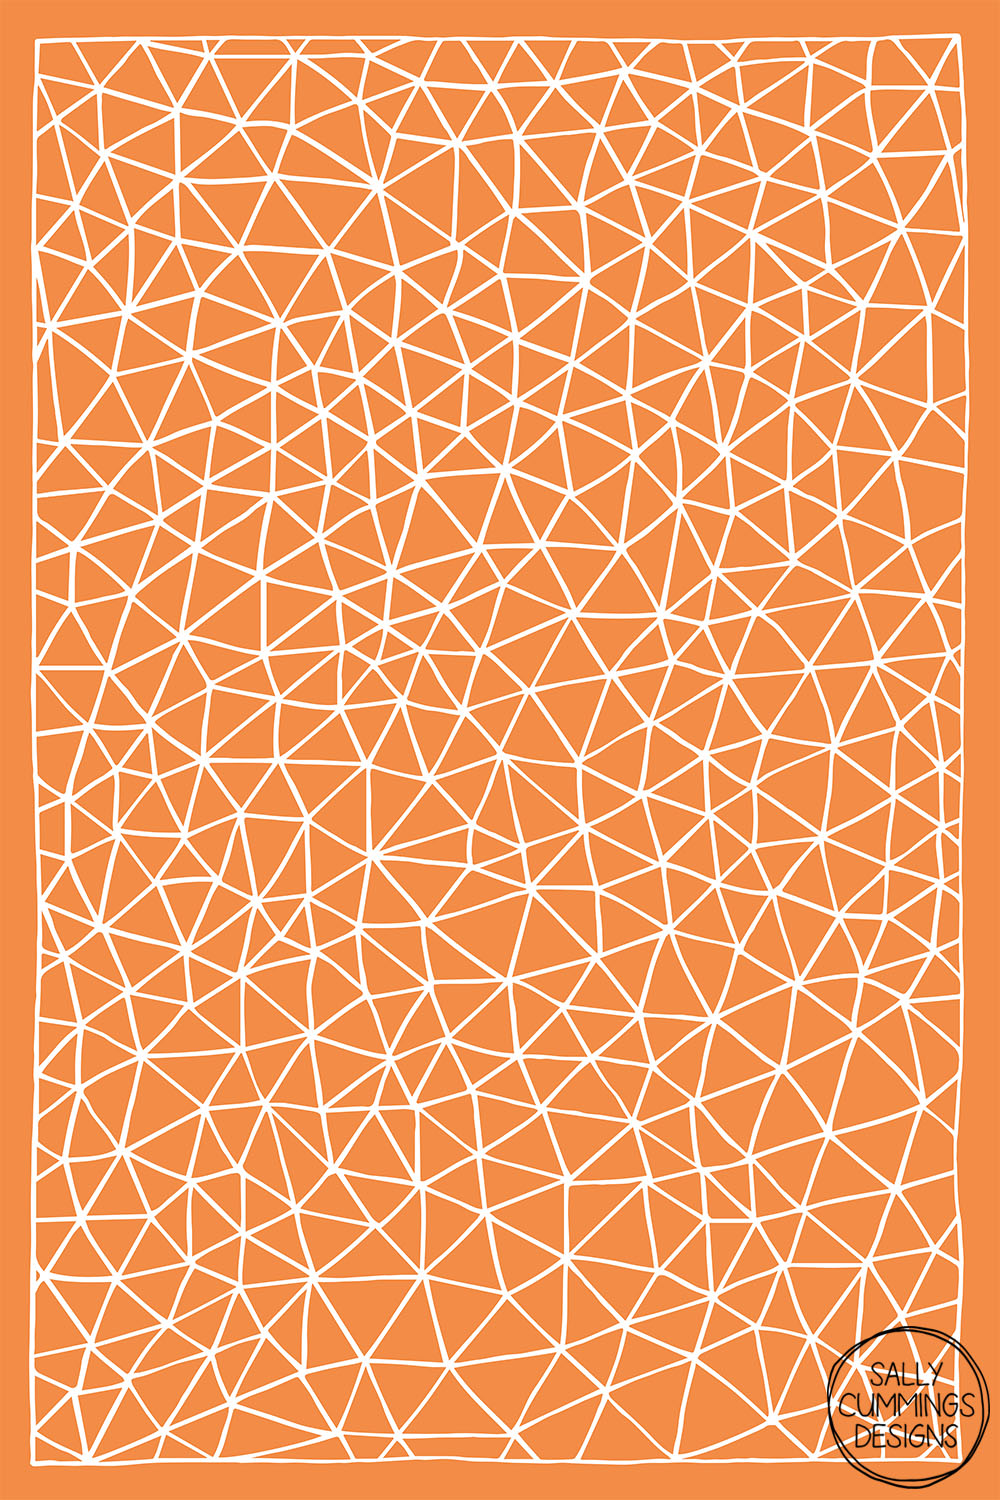 Sally Cummings Designs - Connectivity (White on Orange)